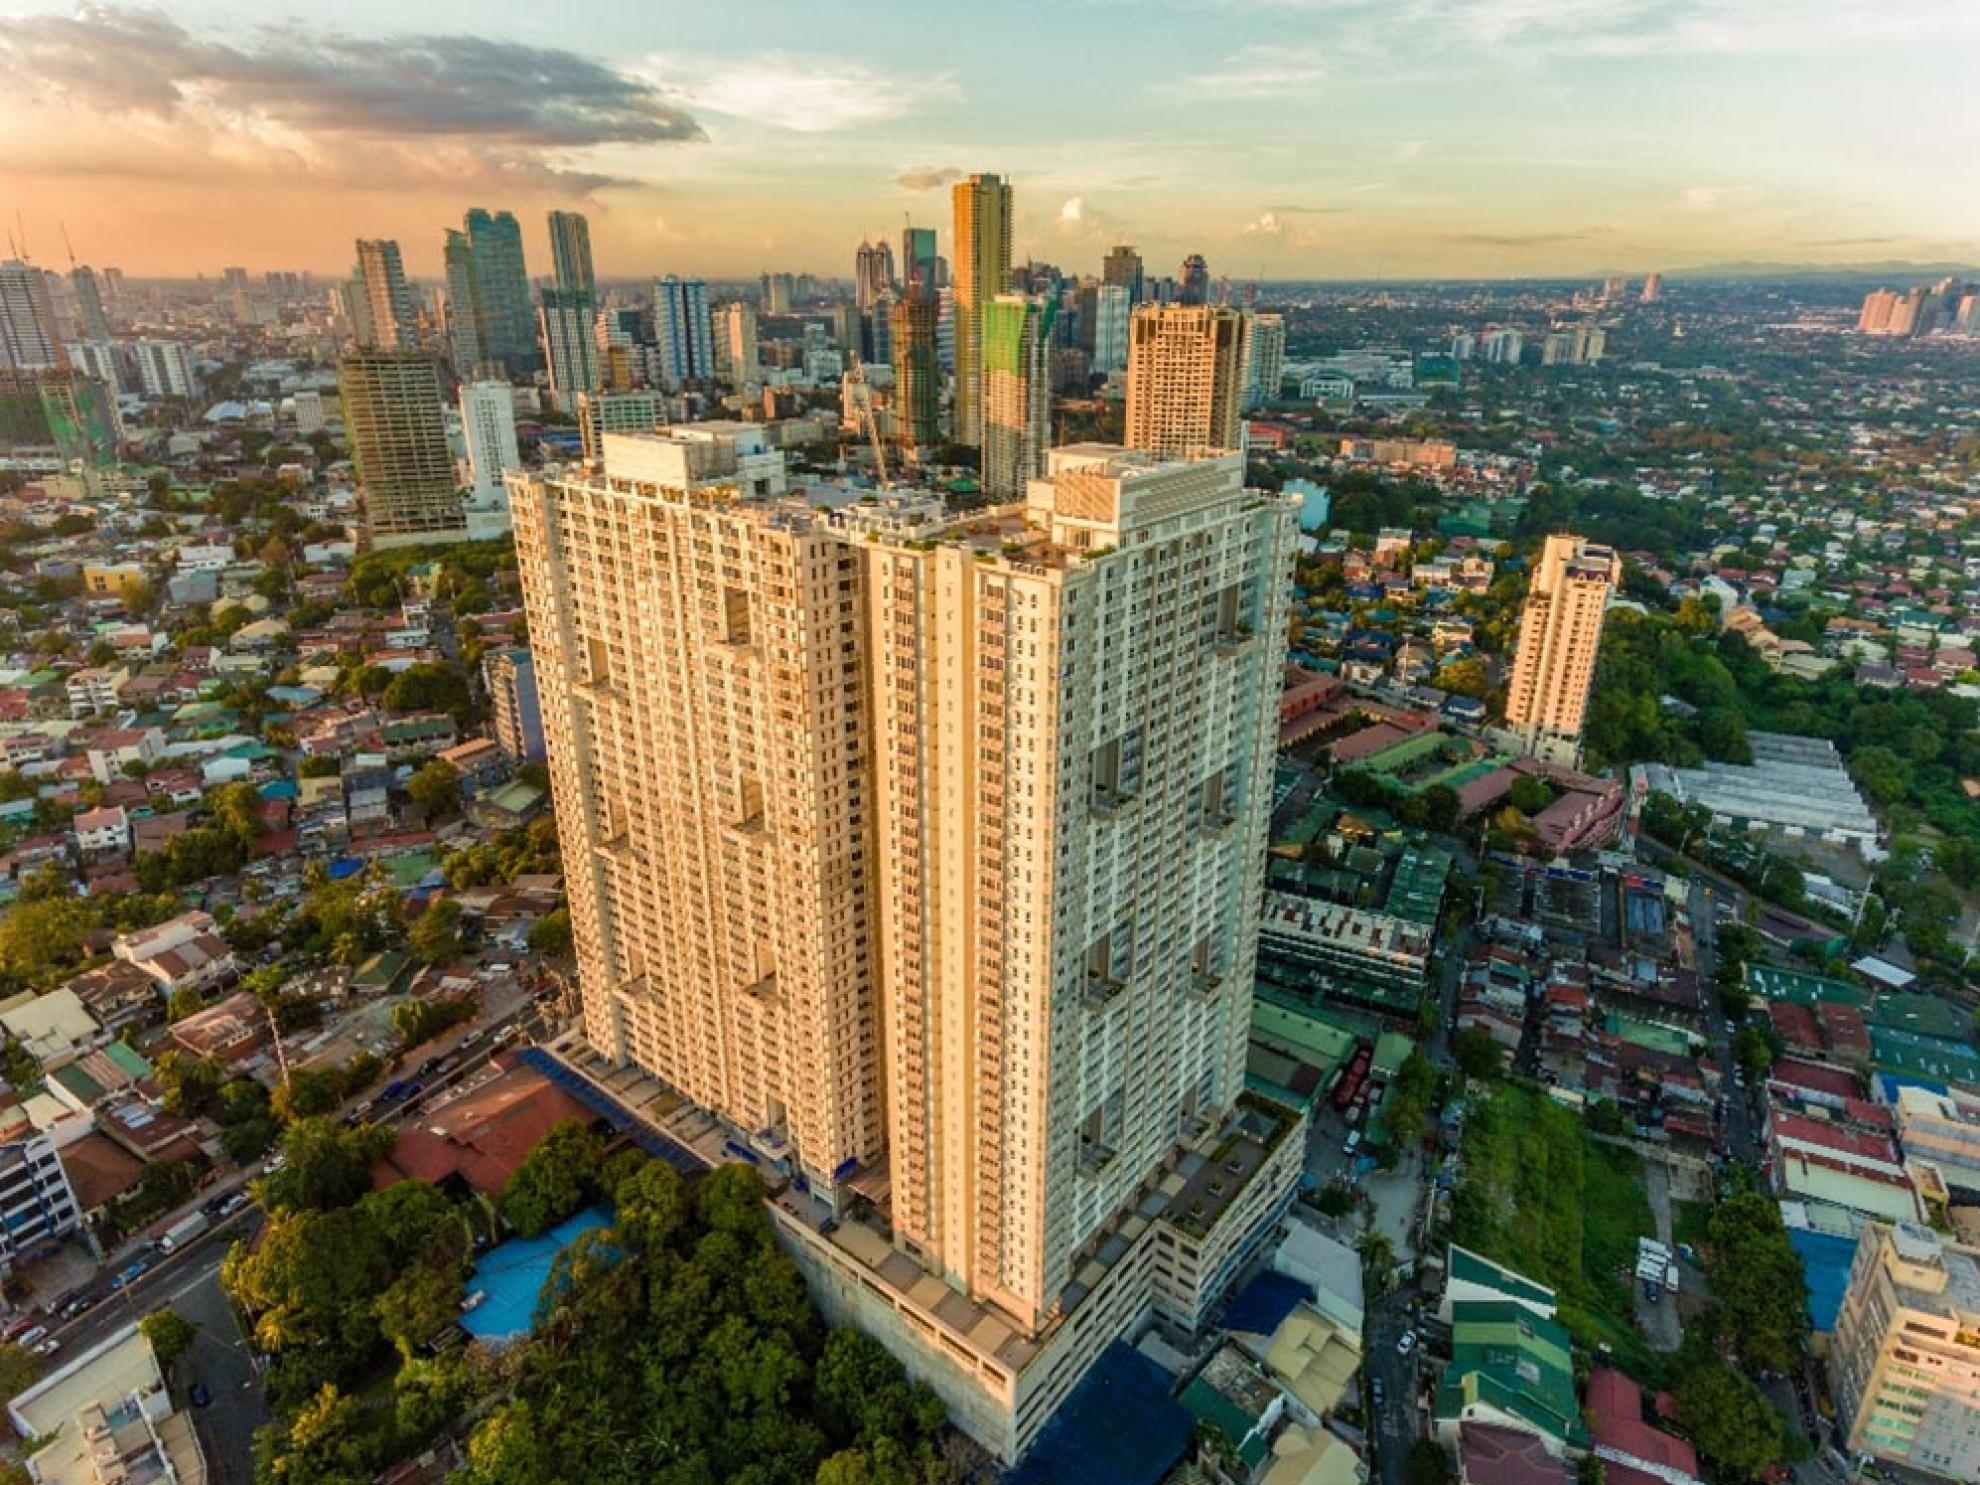 Lumiere Residences' 2nd tower up for early turnover this June